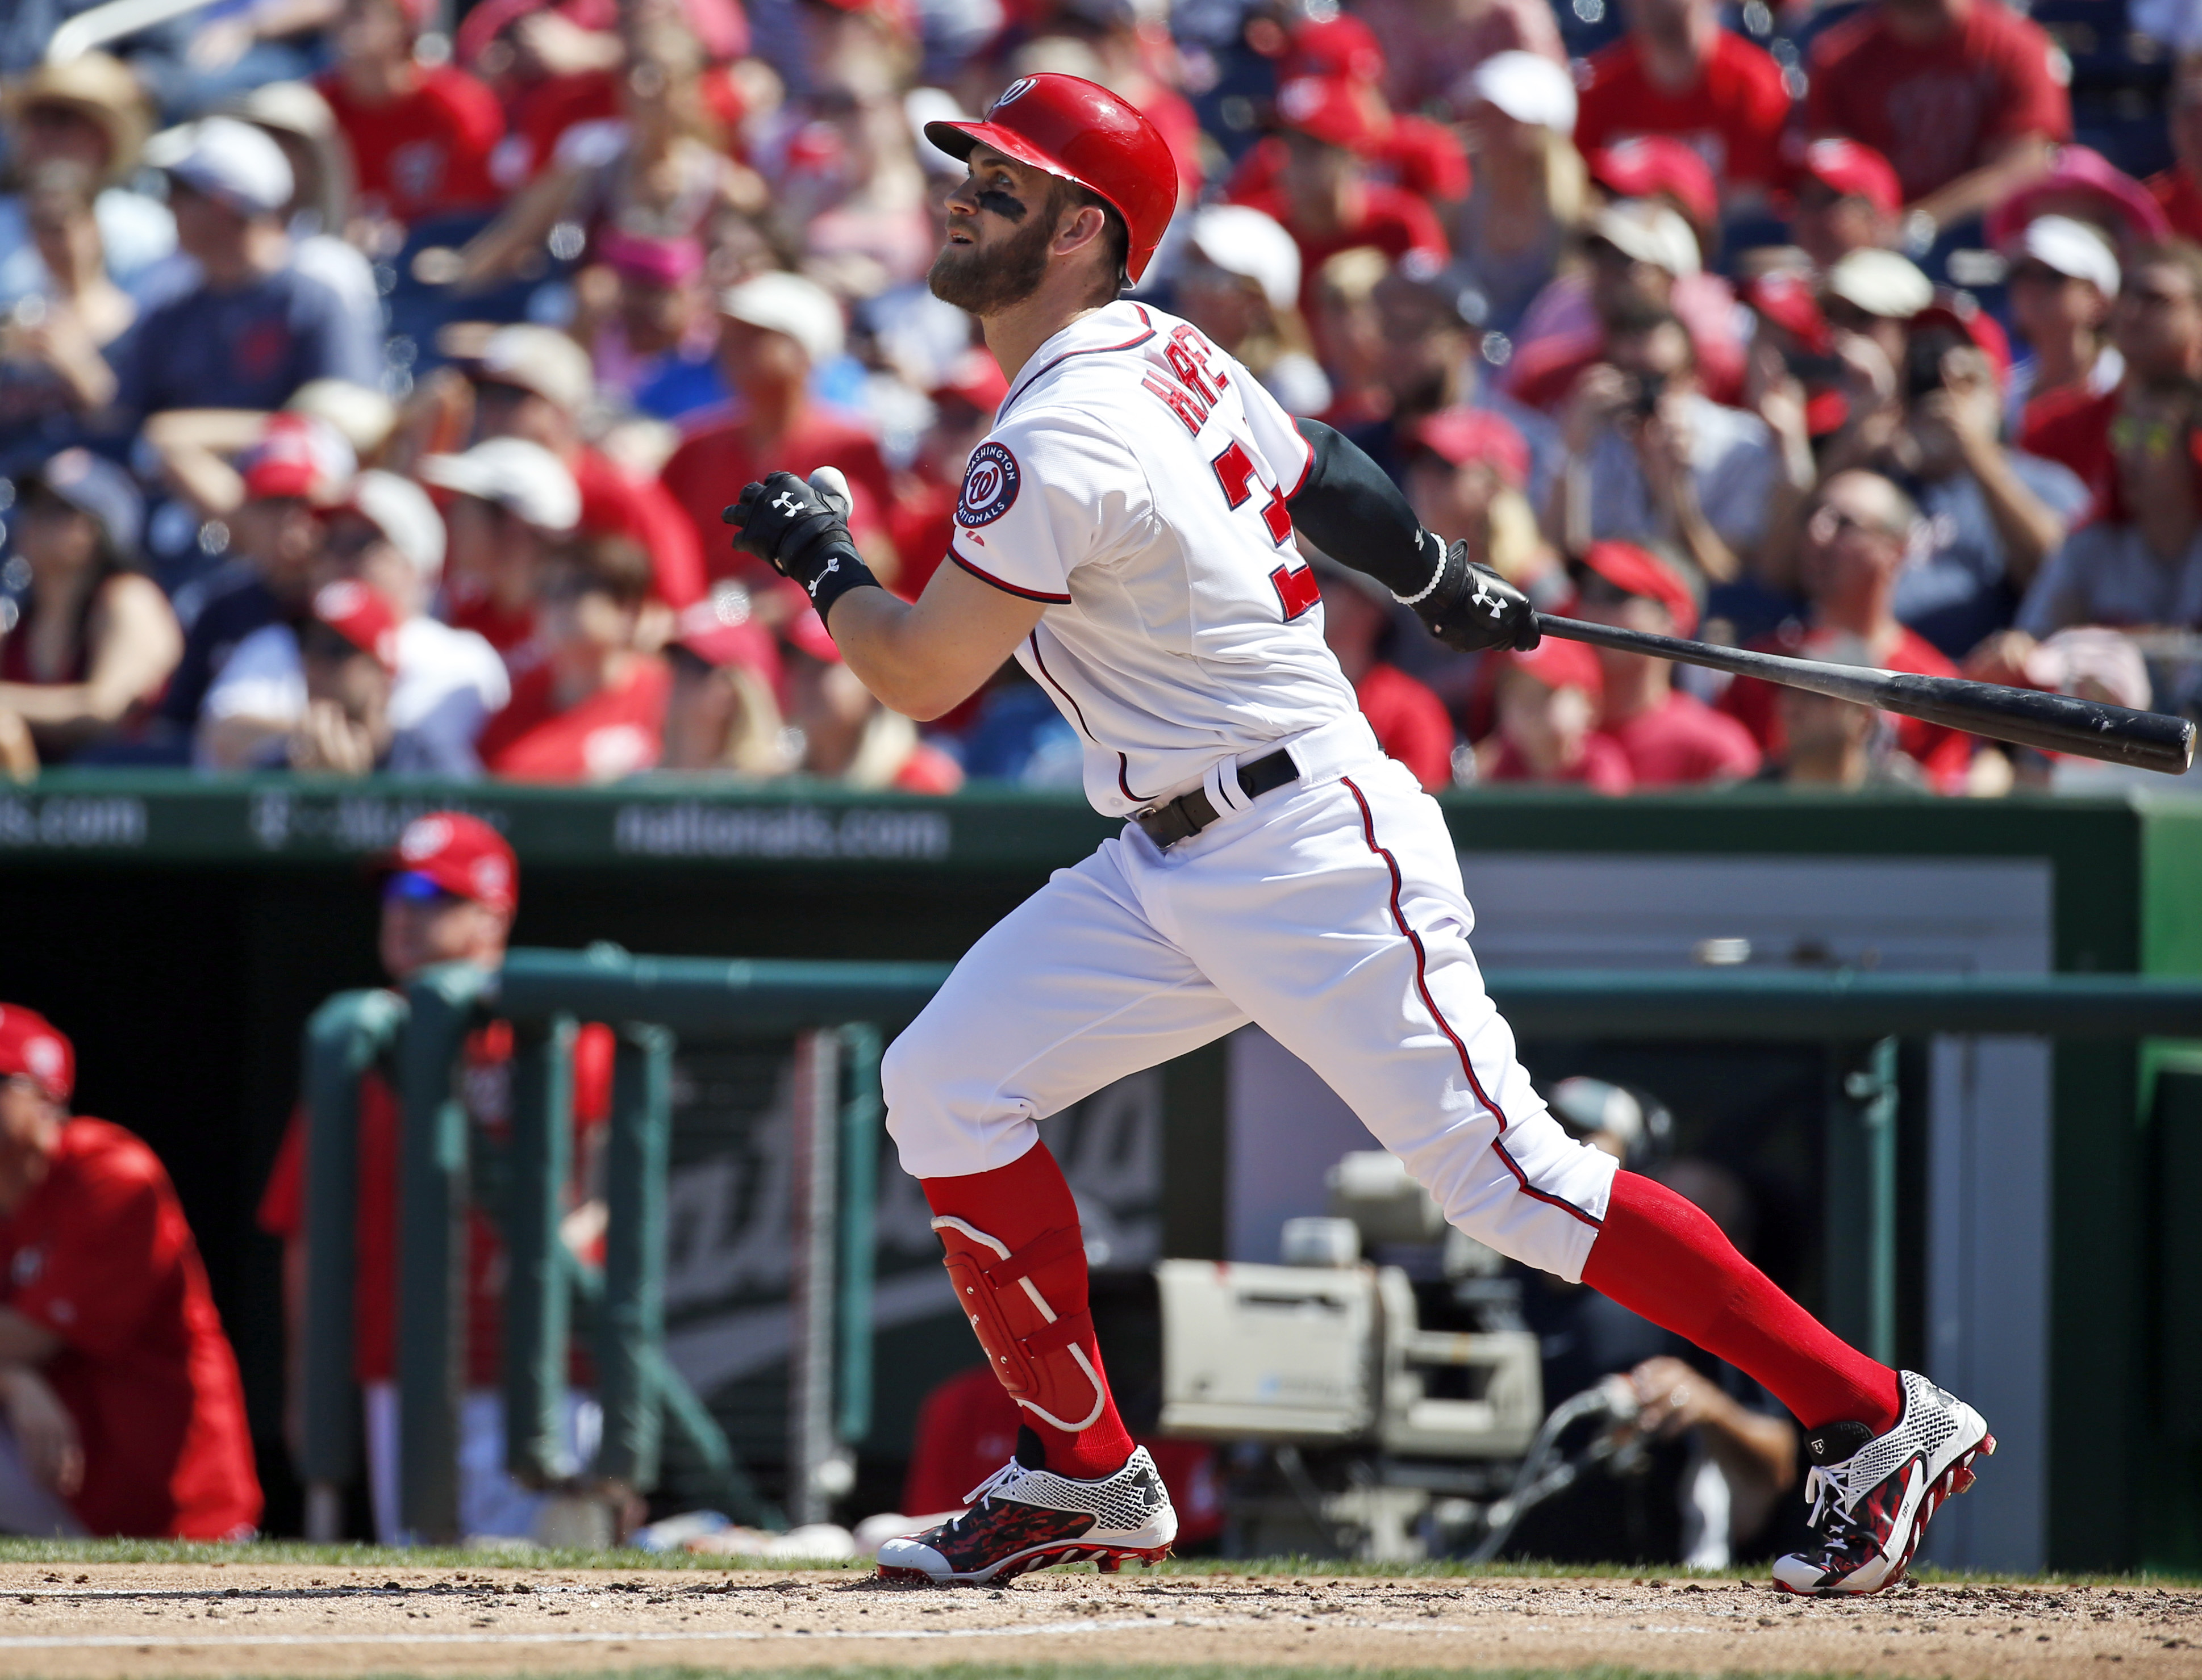 Washington Nationals' Bryce Harper watches his solo home run during the third inning of a baseball game against the Atlanta Braves at Nationals Park, Sunday, Sept. 6, 2015, in Washington. (AP Photo/Alex Brandon)